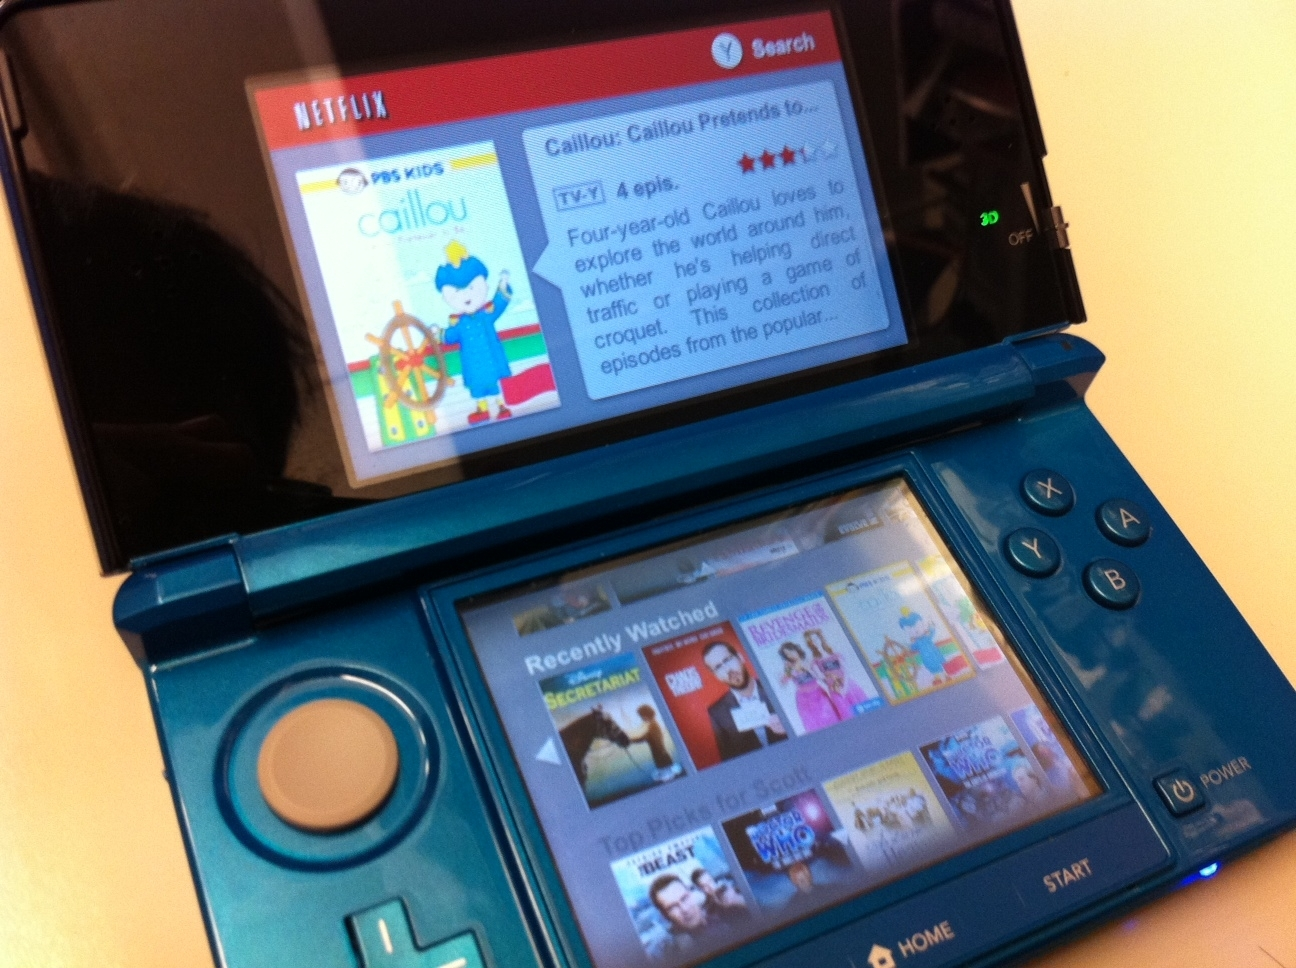 Netflix on the 3DS.